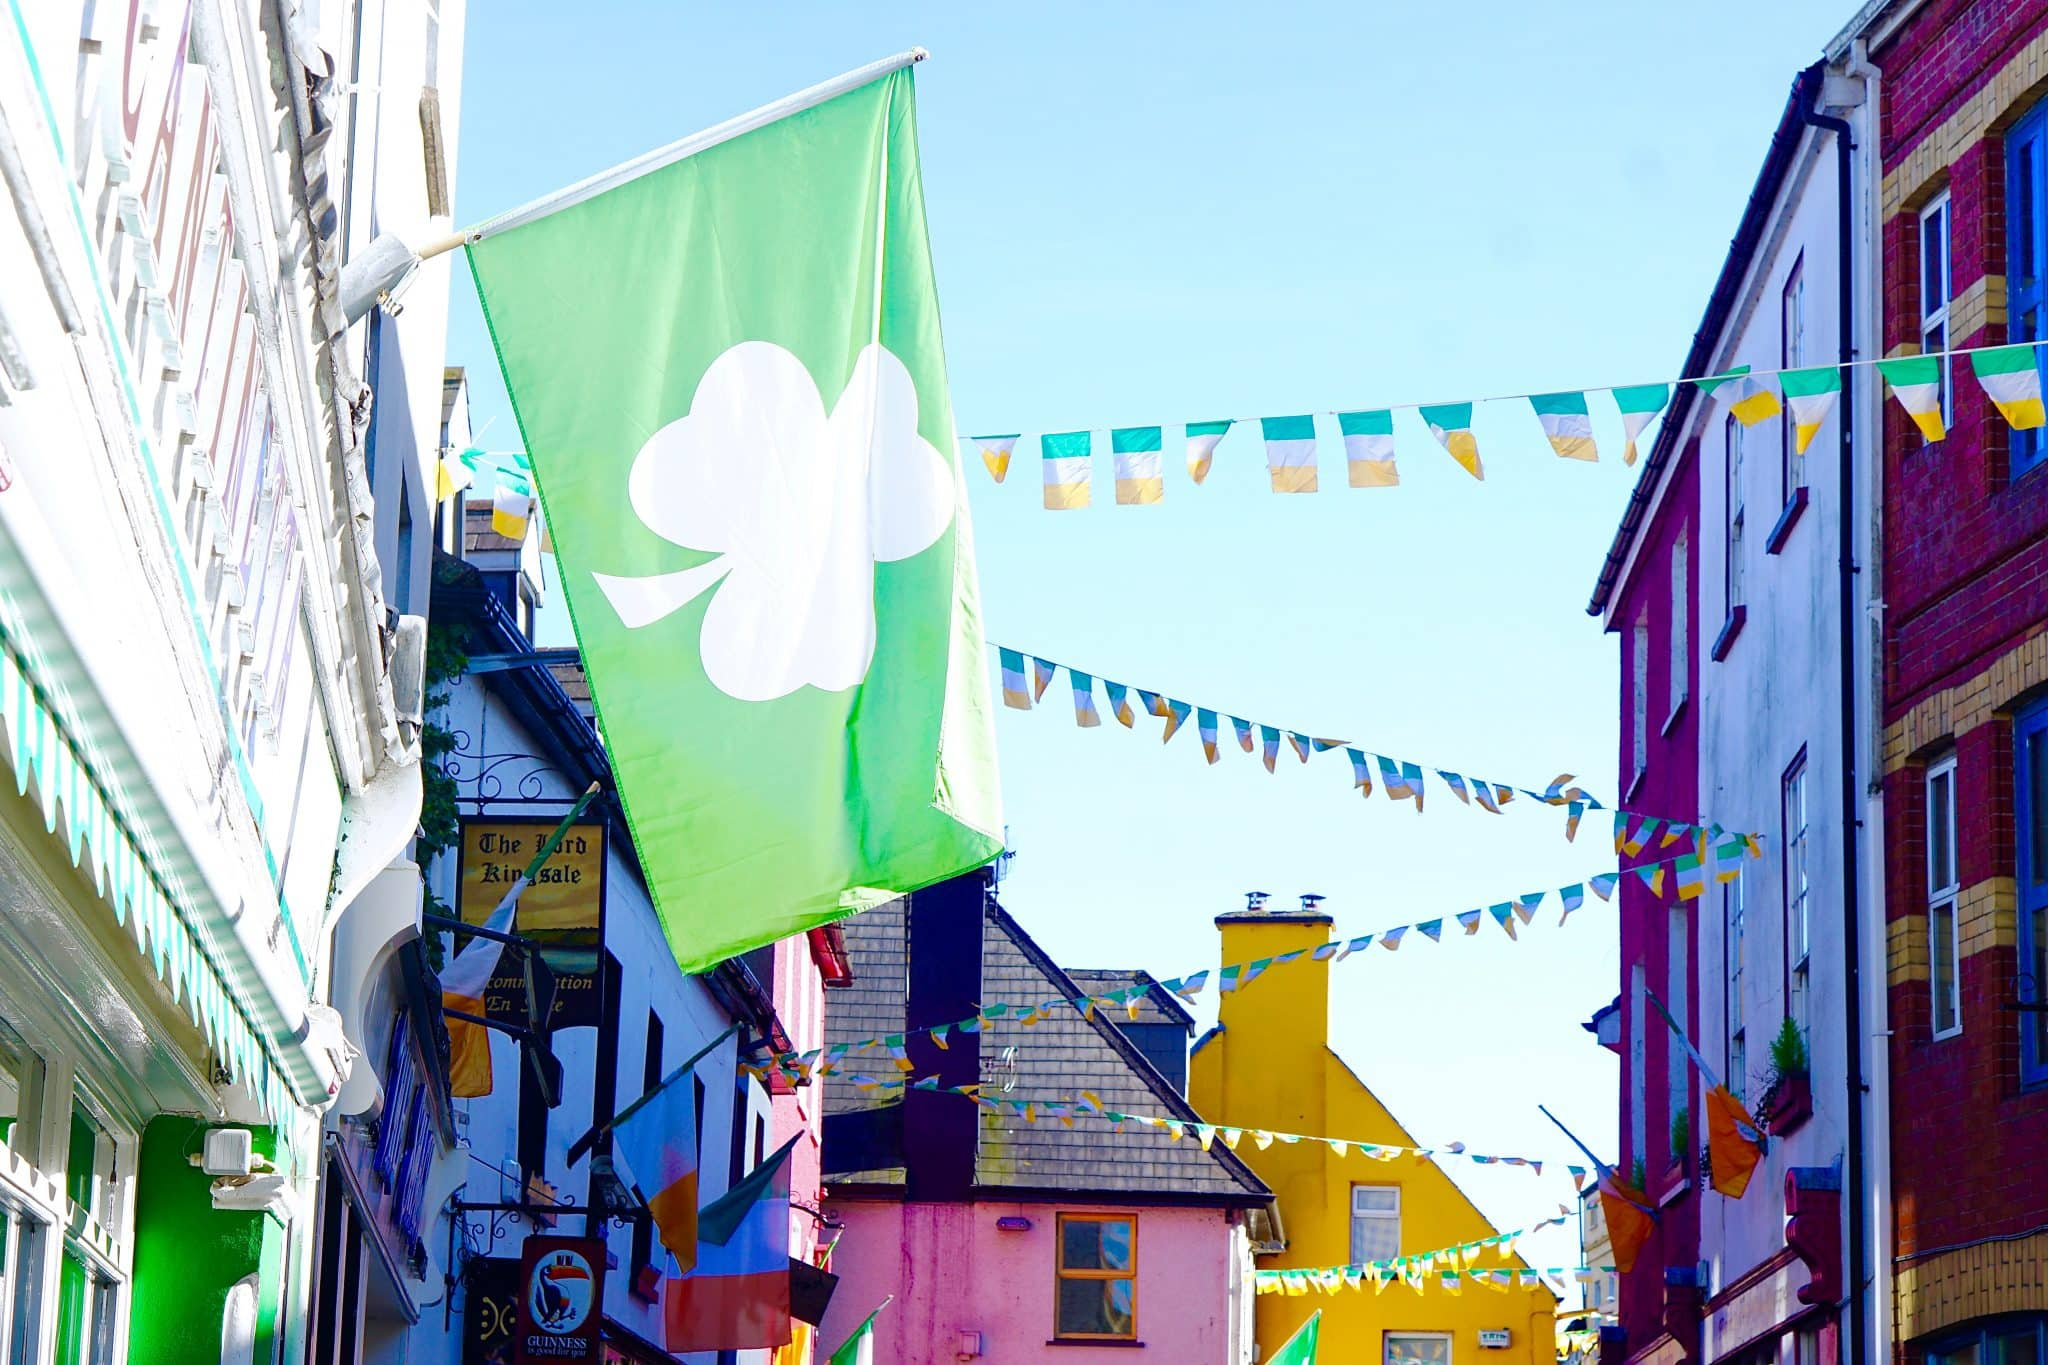 10 Irish Phrases that Confuse Americans